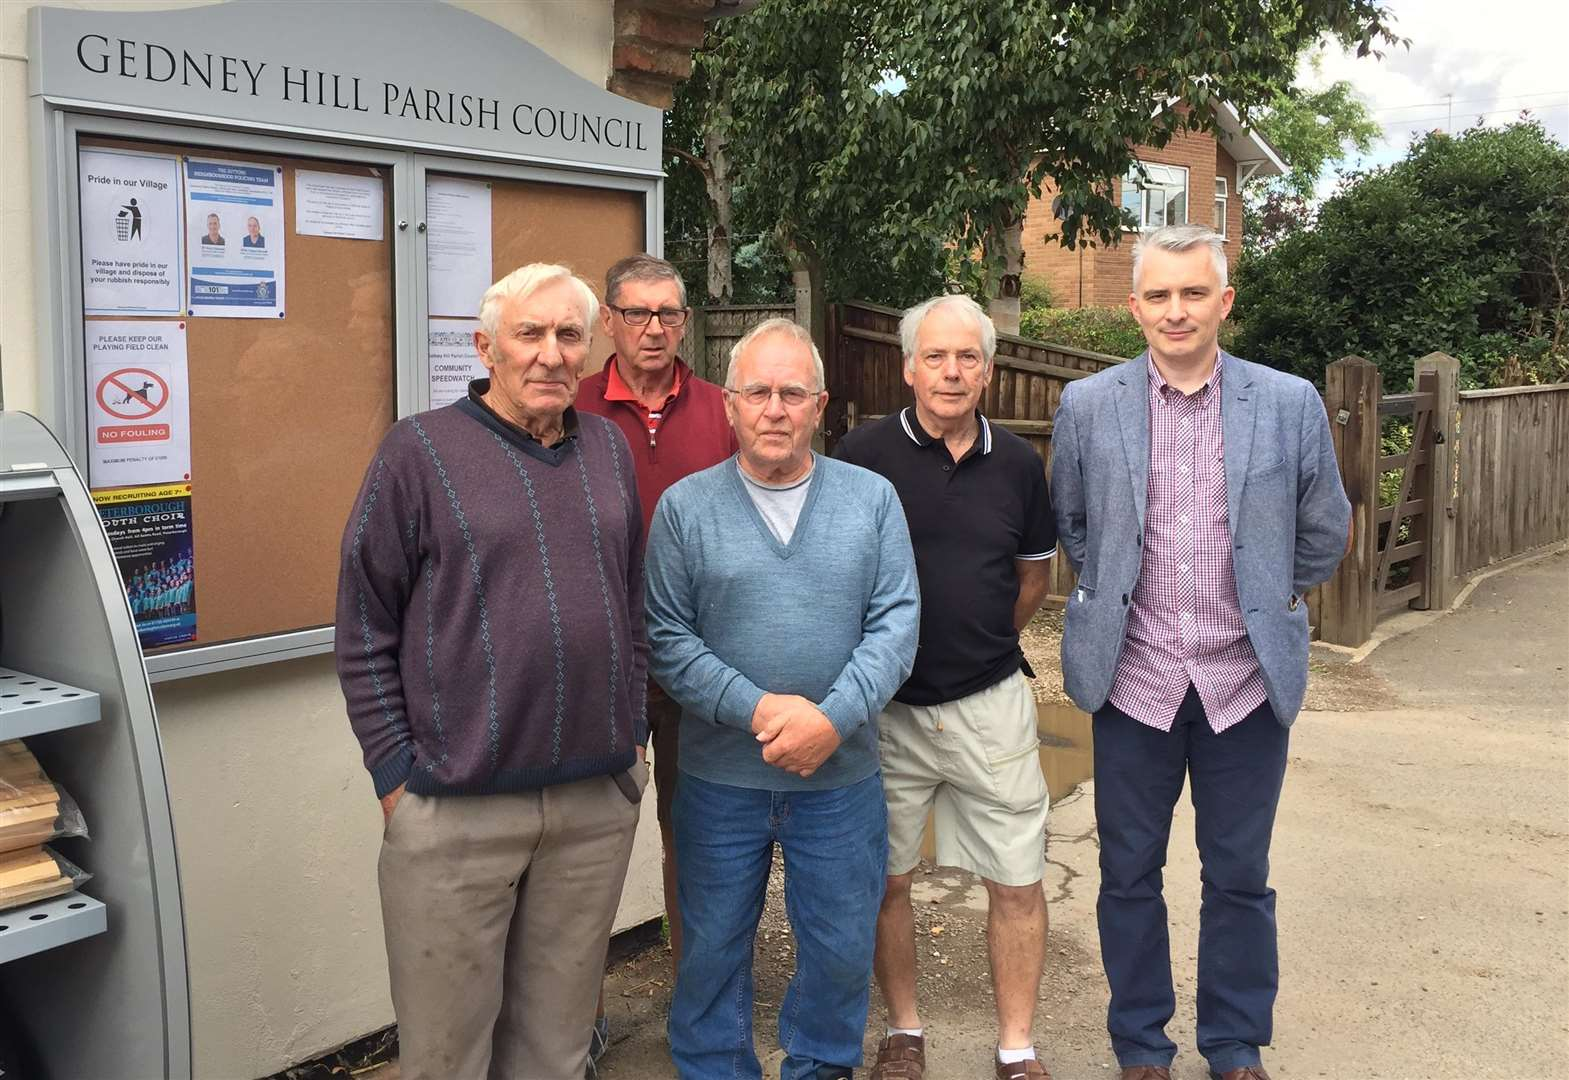 GEDNEY HILL PARISH COUNCIL: Village faces long wait for answer on sewerage system